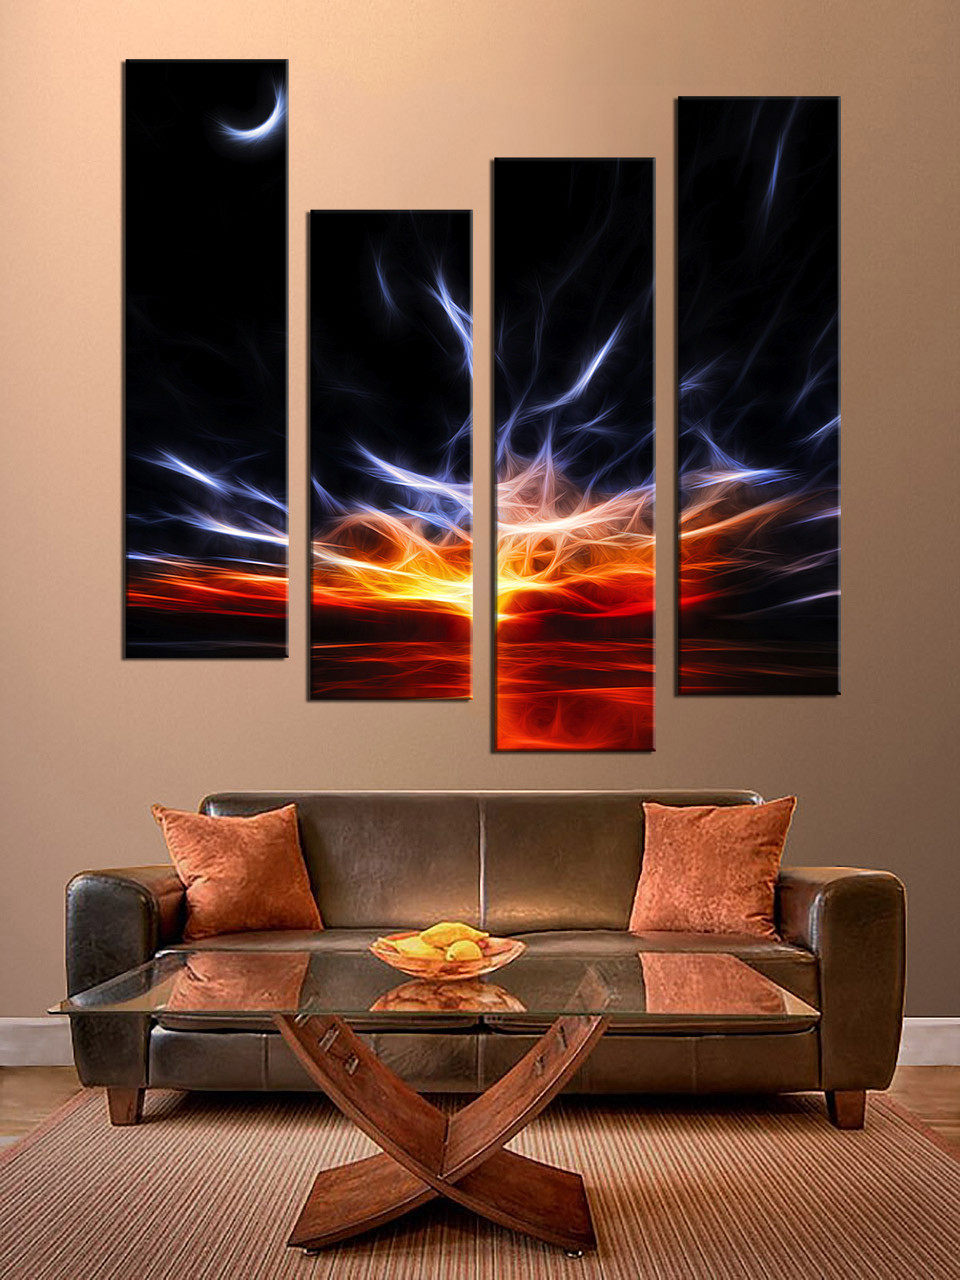 Living Room Paintings 4 Piece Home Decor Abstract Colorful Group Canvas Split Oil Paintings